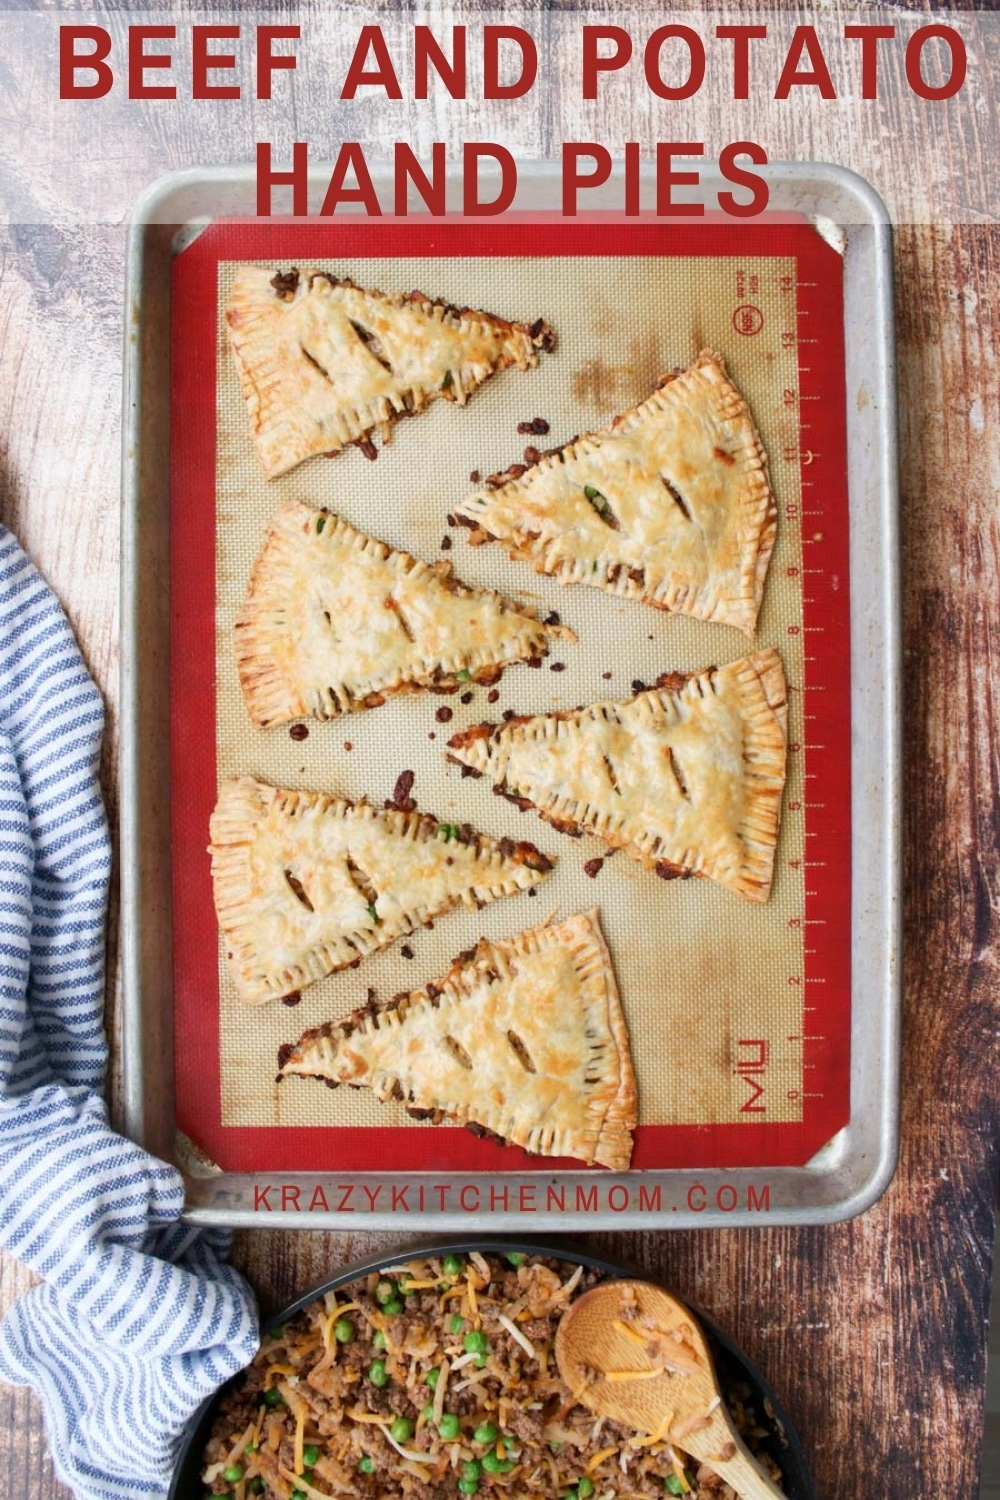 Beef and Potato Hand Pies are flaky little pies filled with ground beef, hash brown potatoes, peas, and cheese. The crust is rustic with extra crunchy edges.  via @krazykitchenmom